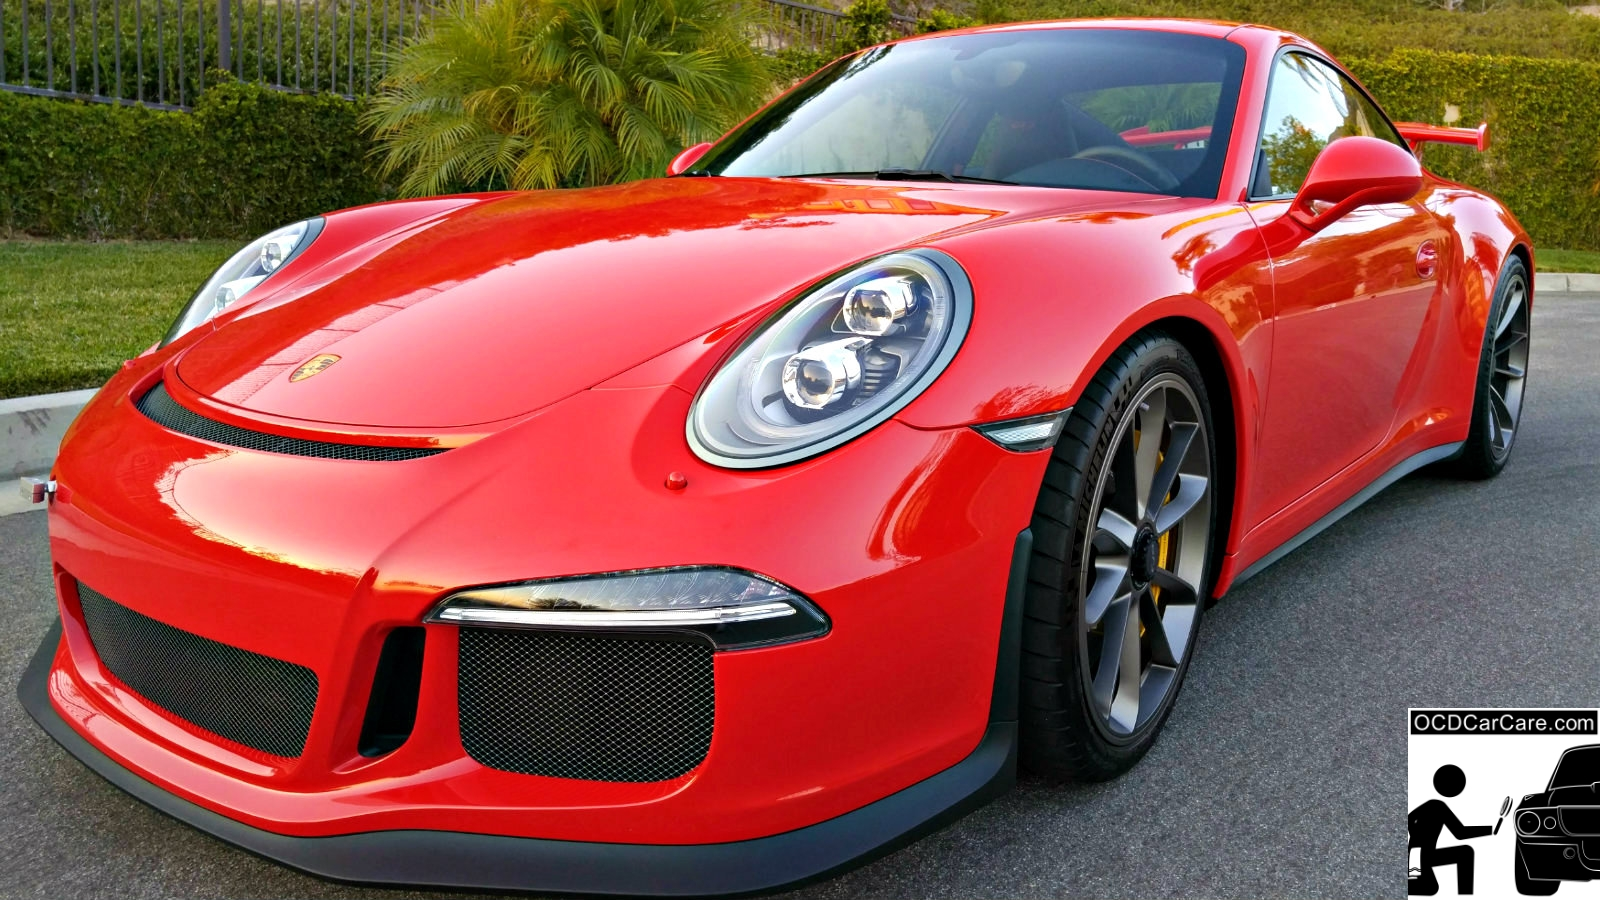 Porsche 911 GT3 received a full paint correction & ceramic nano coating by OCDCarCare, Los Angeles' premier auto detailer.